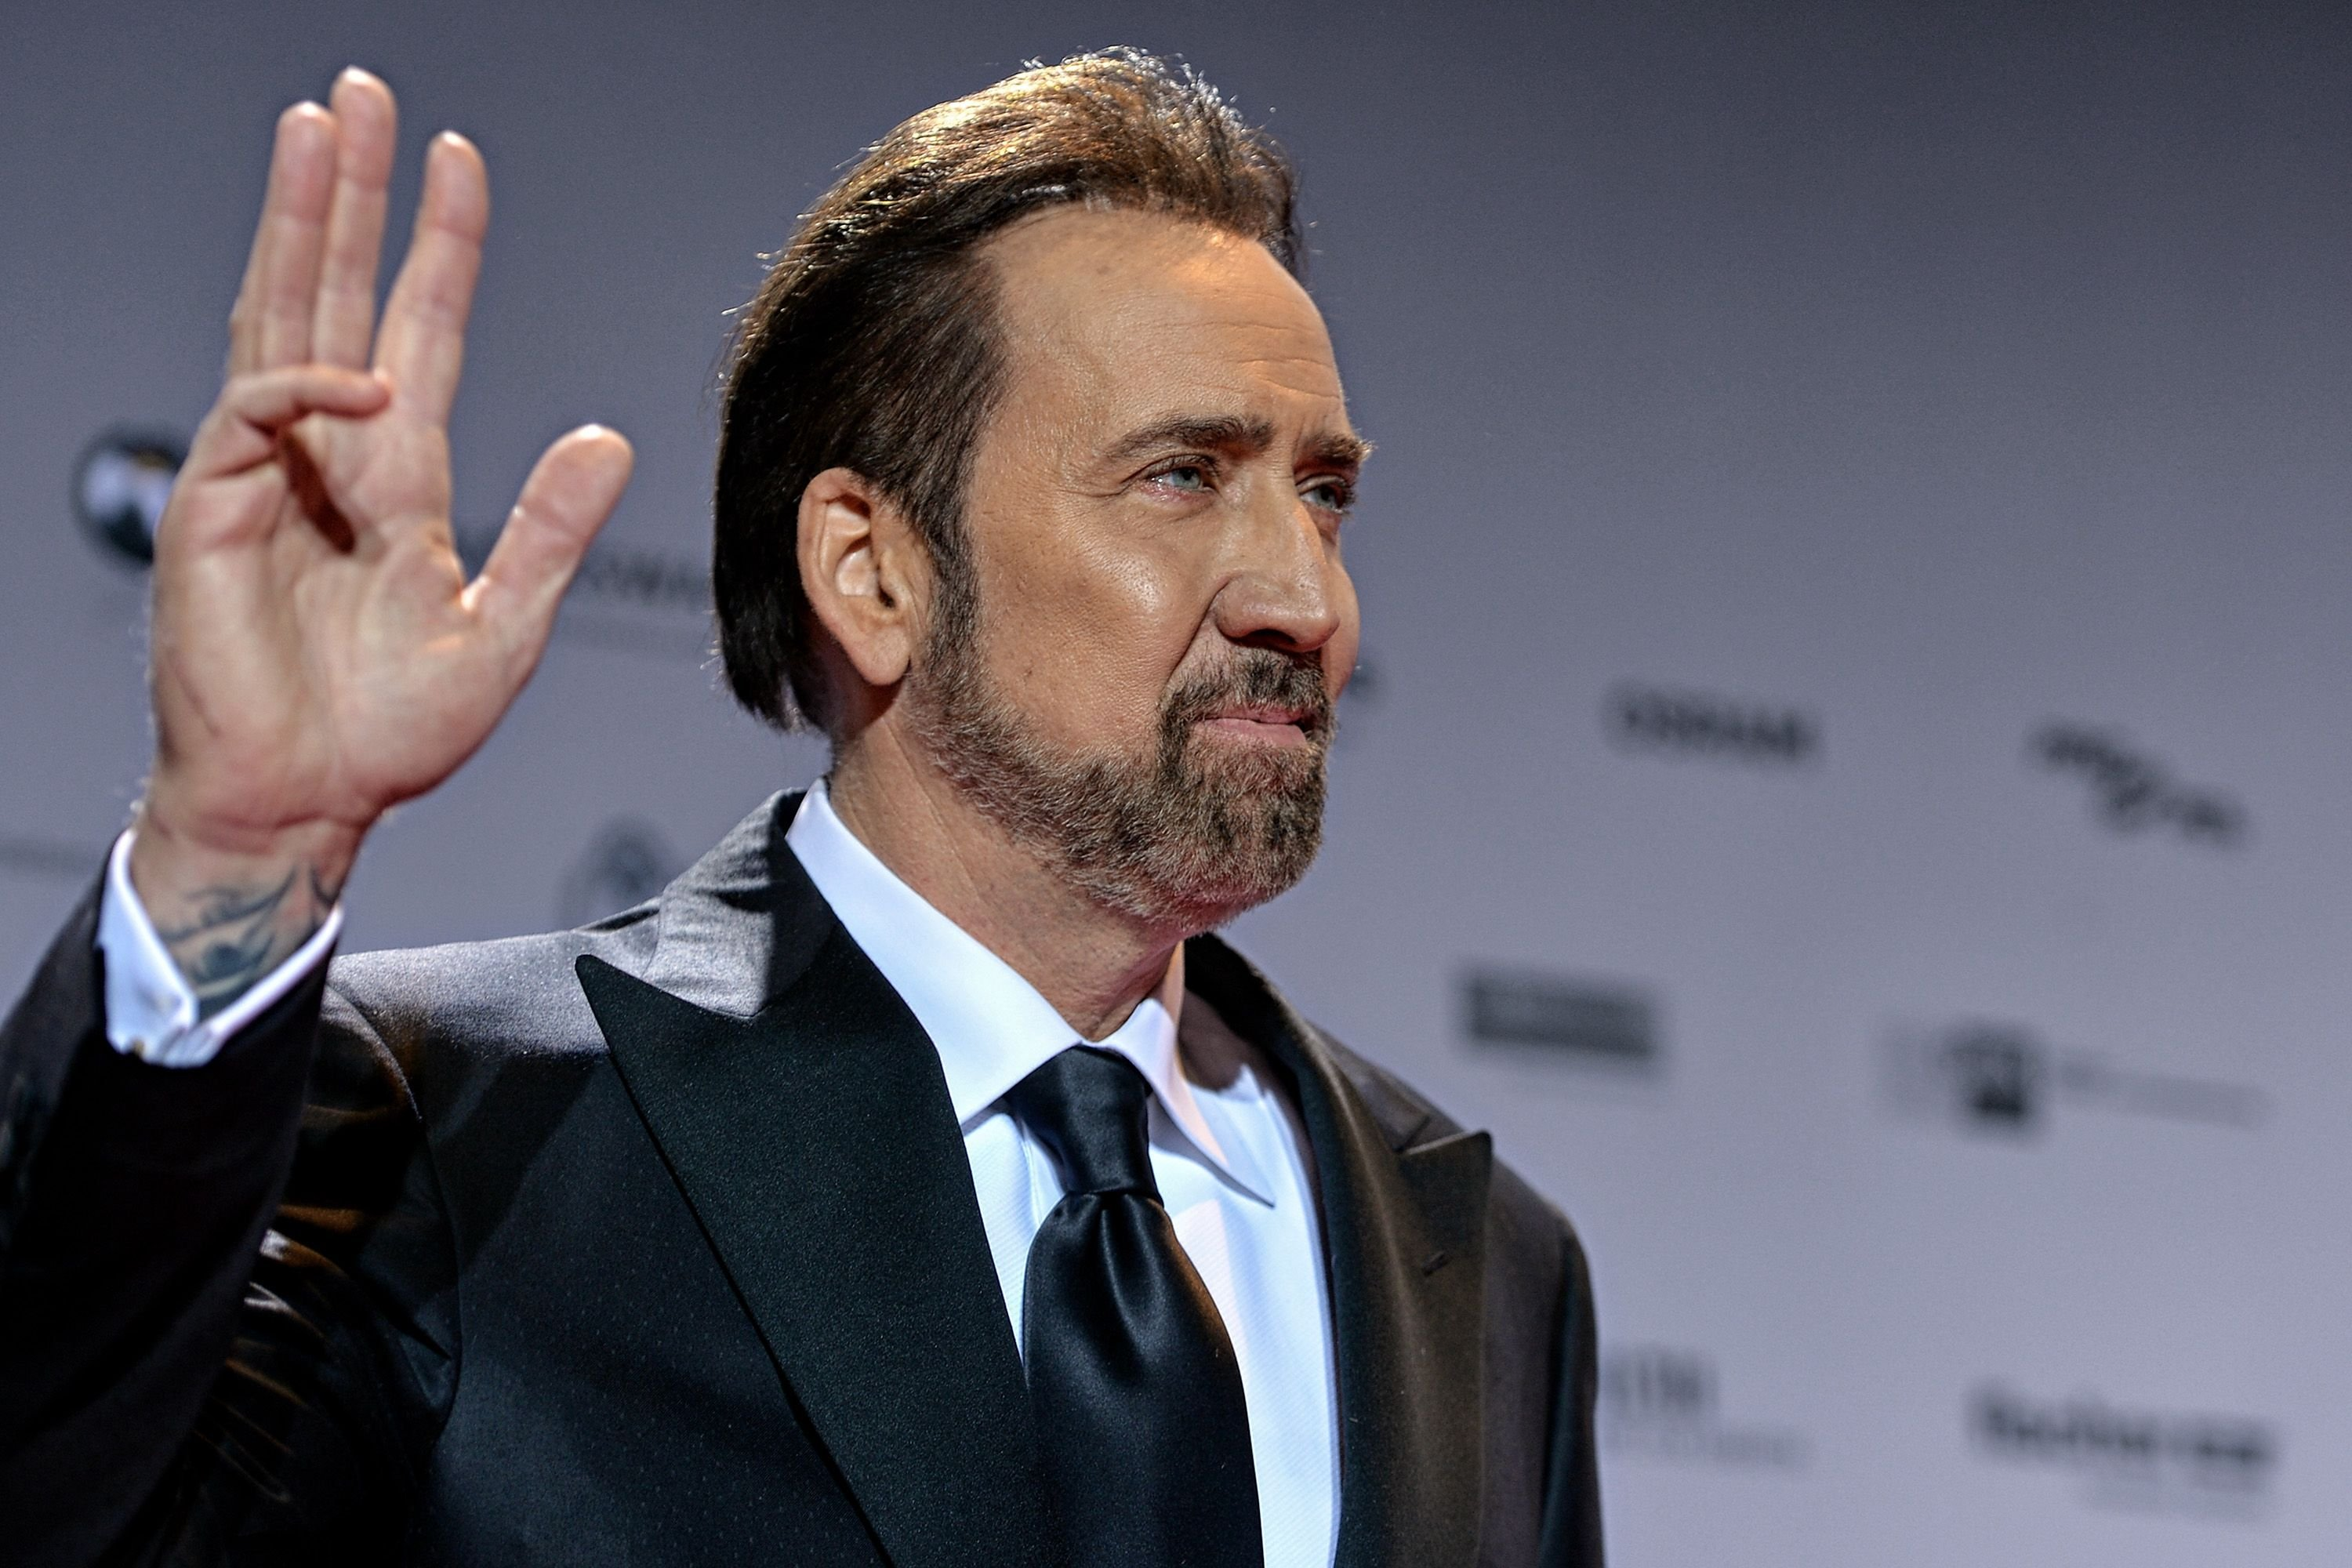 Nicolas Cage attends the German Sustainability Award 2016. | Source: Getty Images